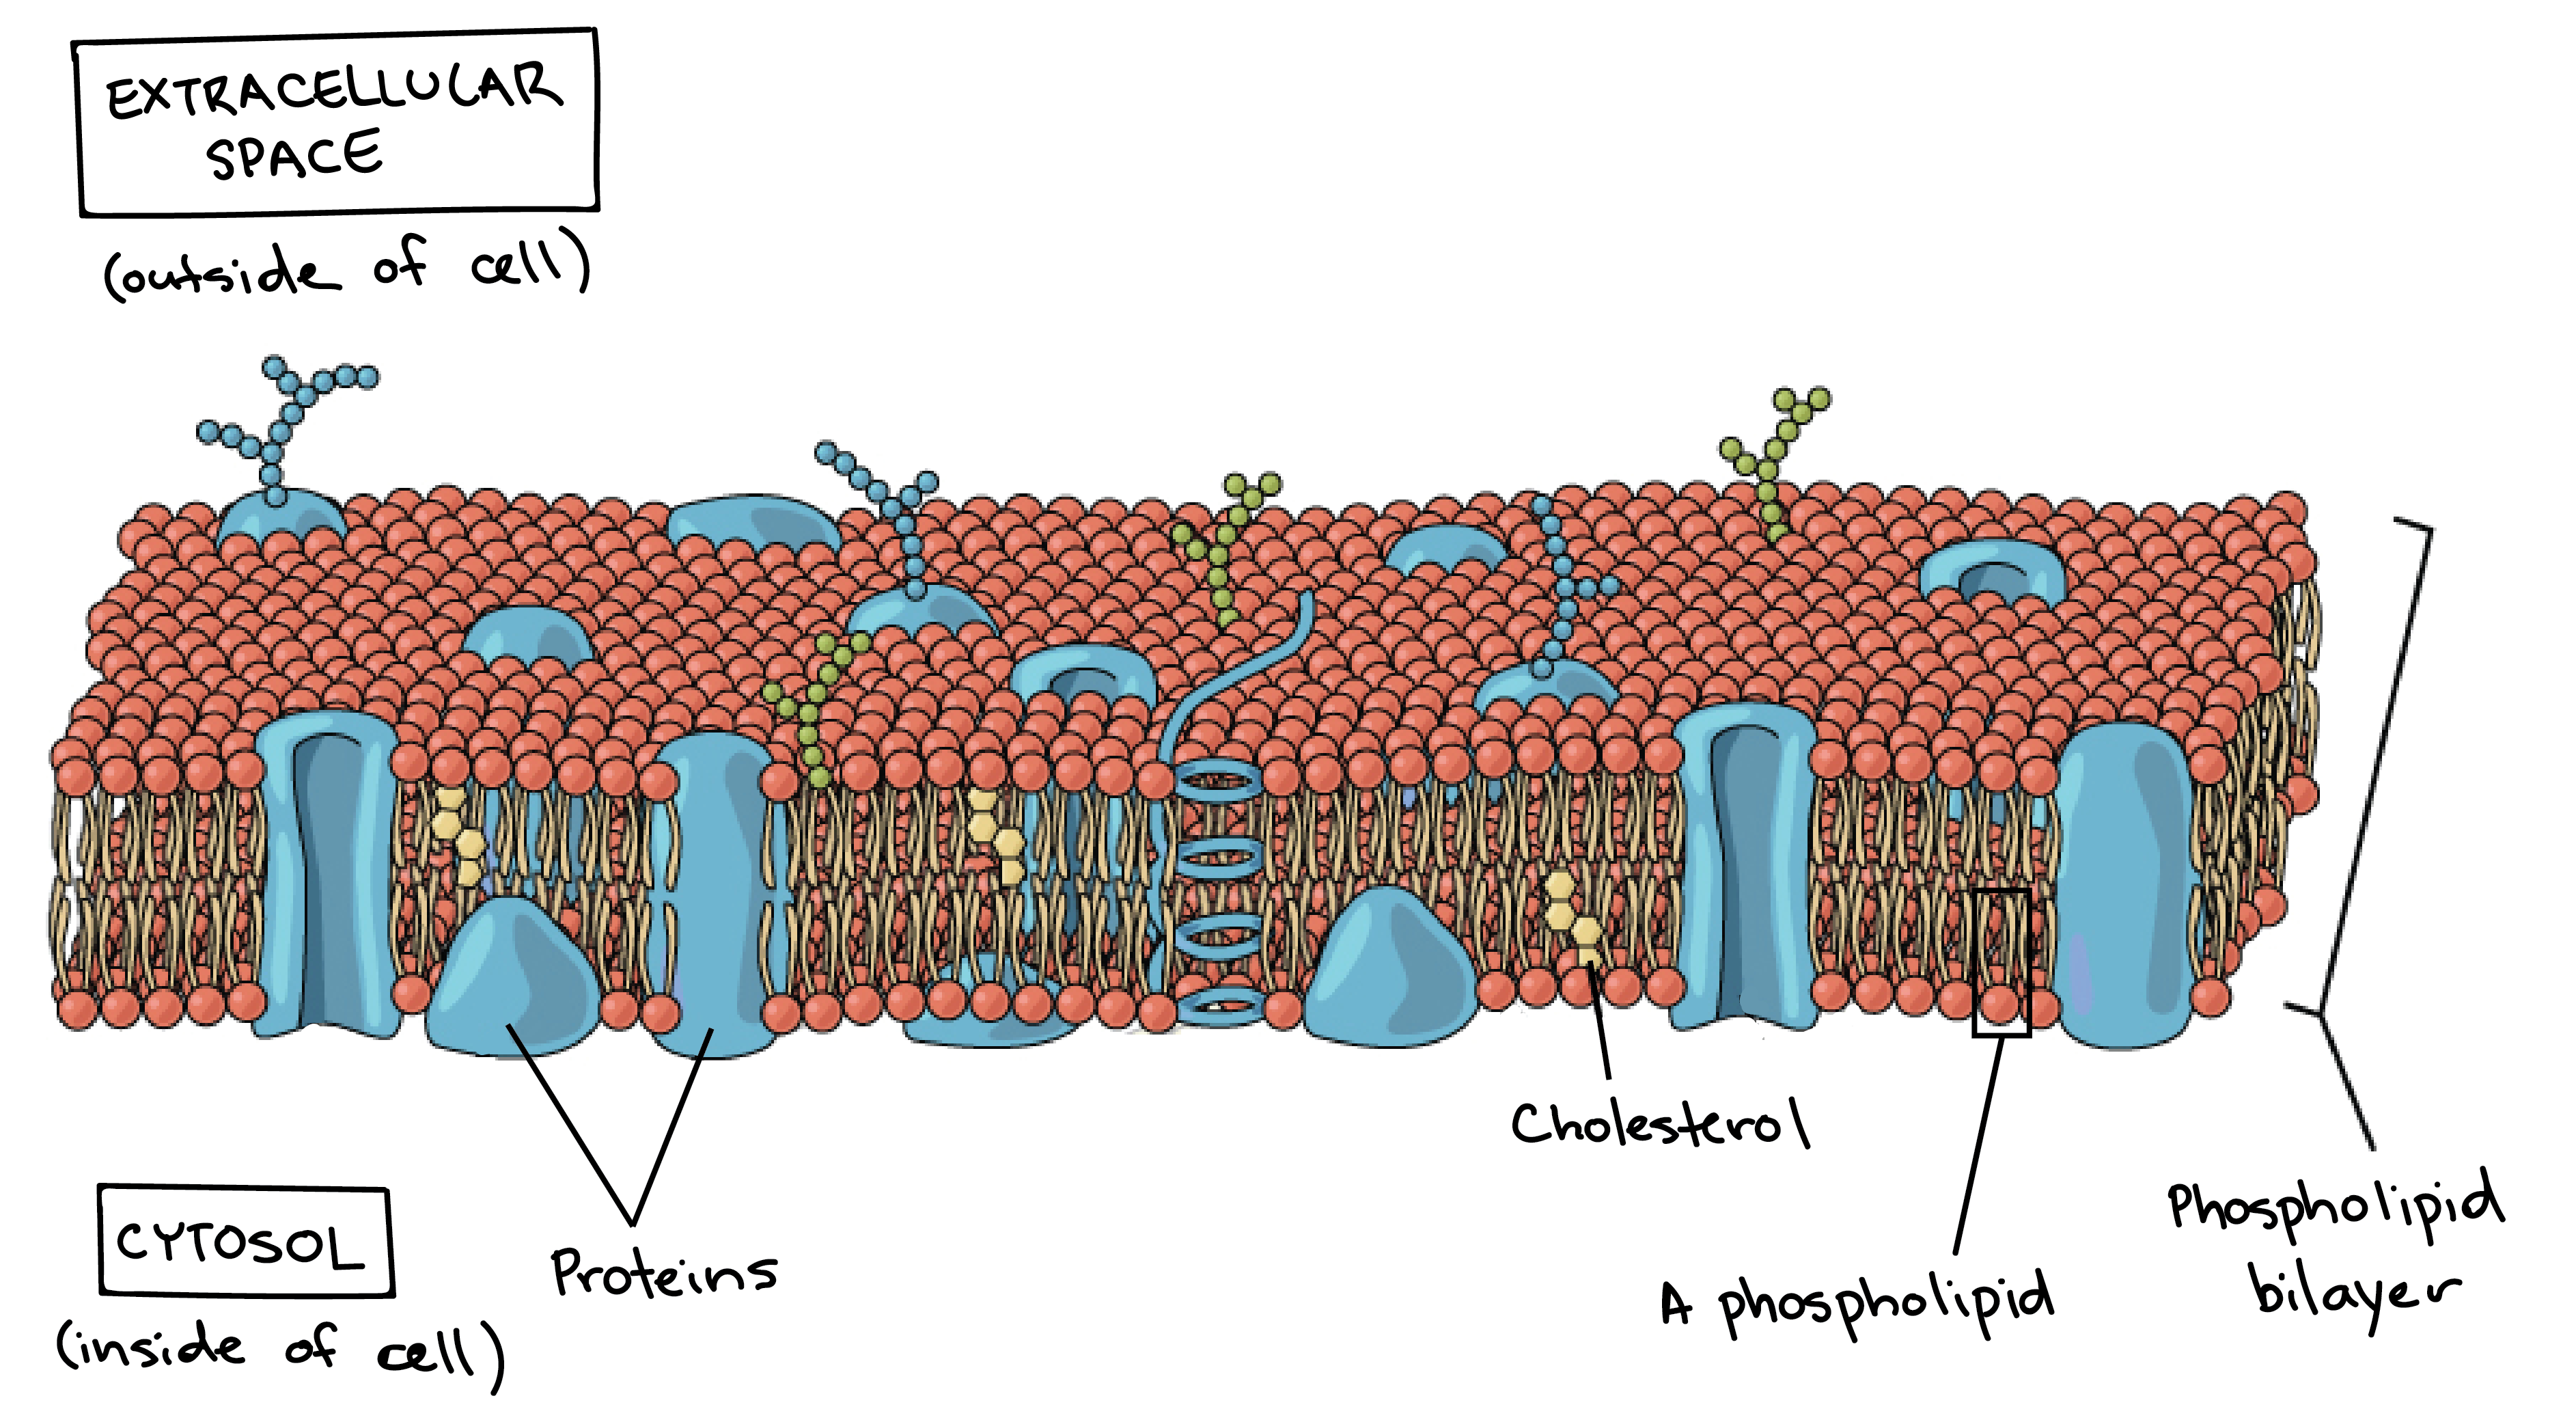 an image of plasma membrane shows the phospholipid bilayer, embedded  proteins, and cholesterol molecules